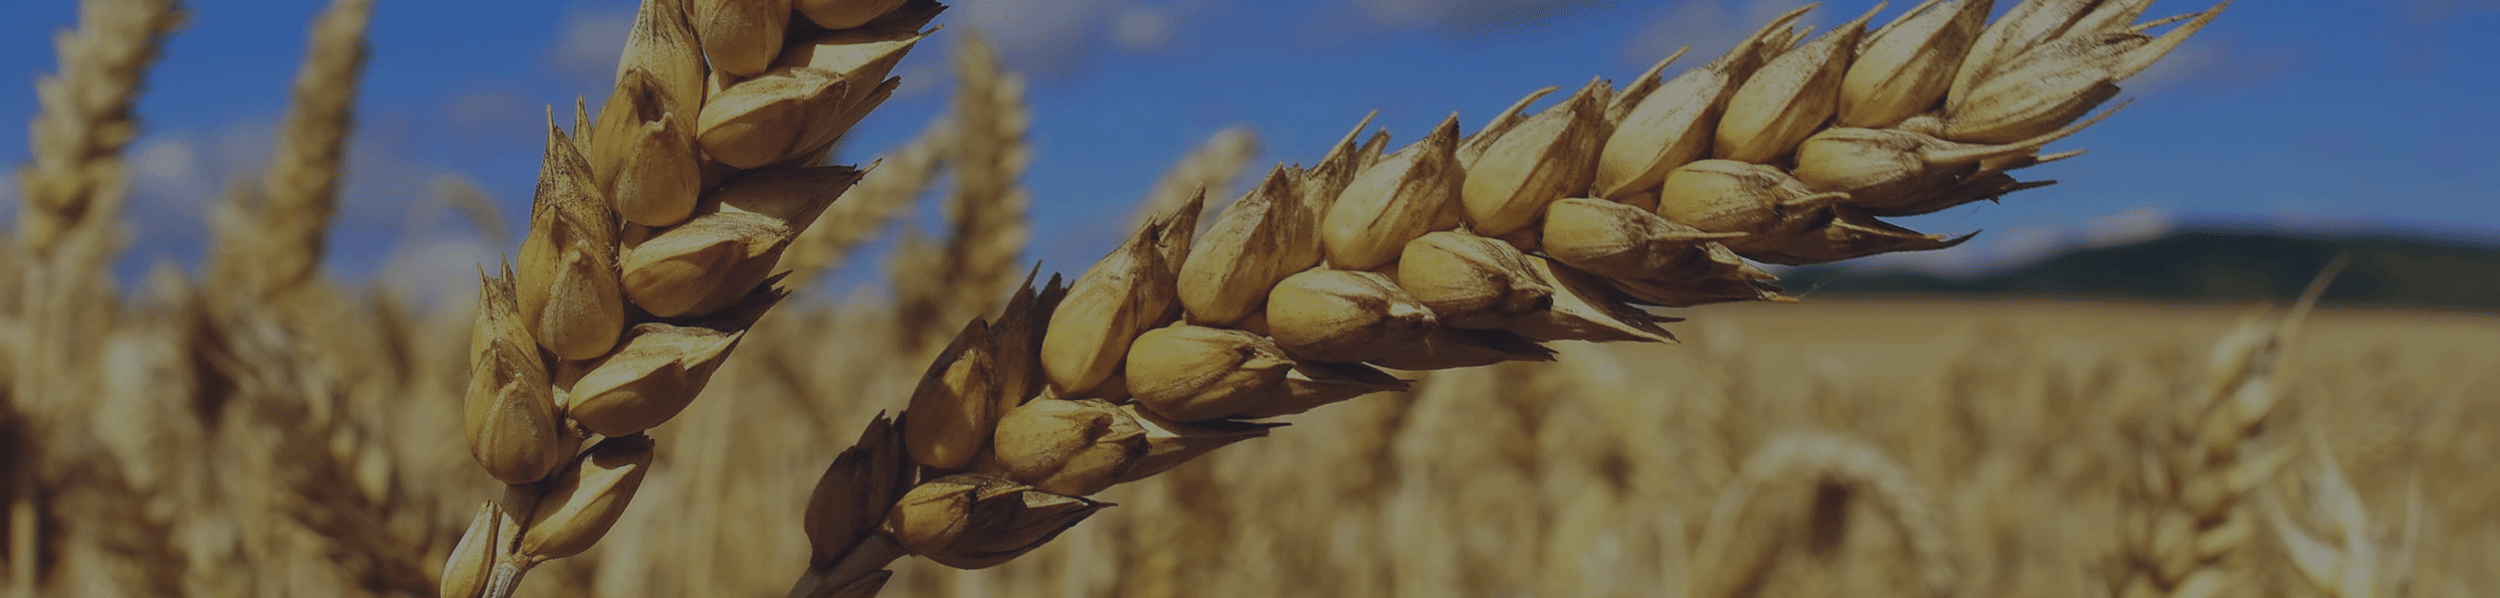 Article Banner Image-wheat-1